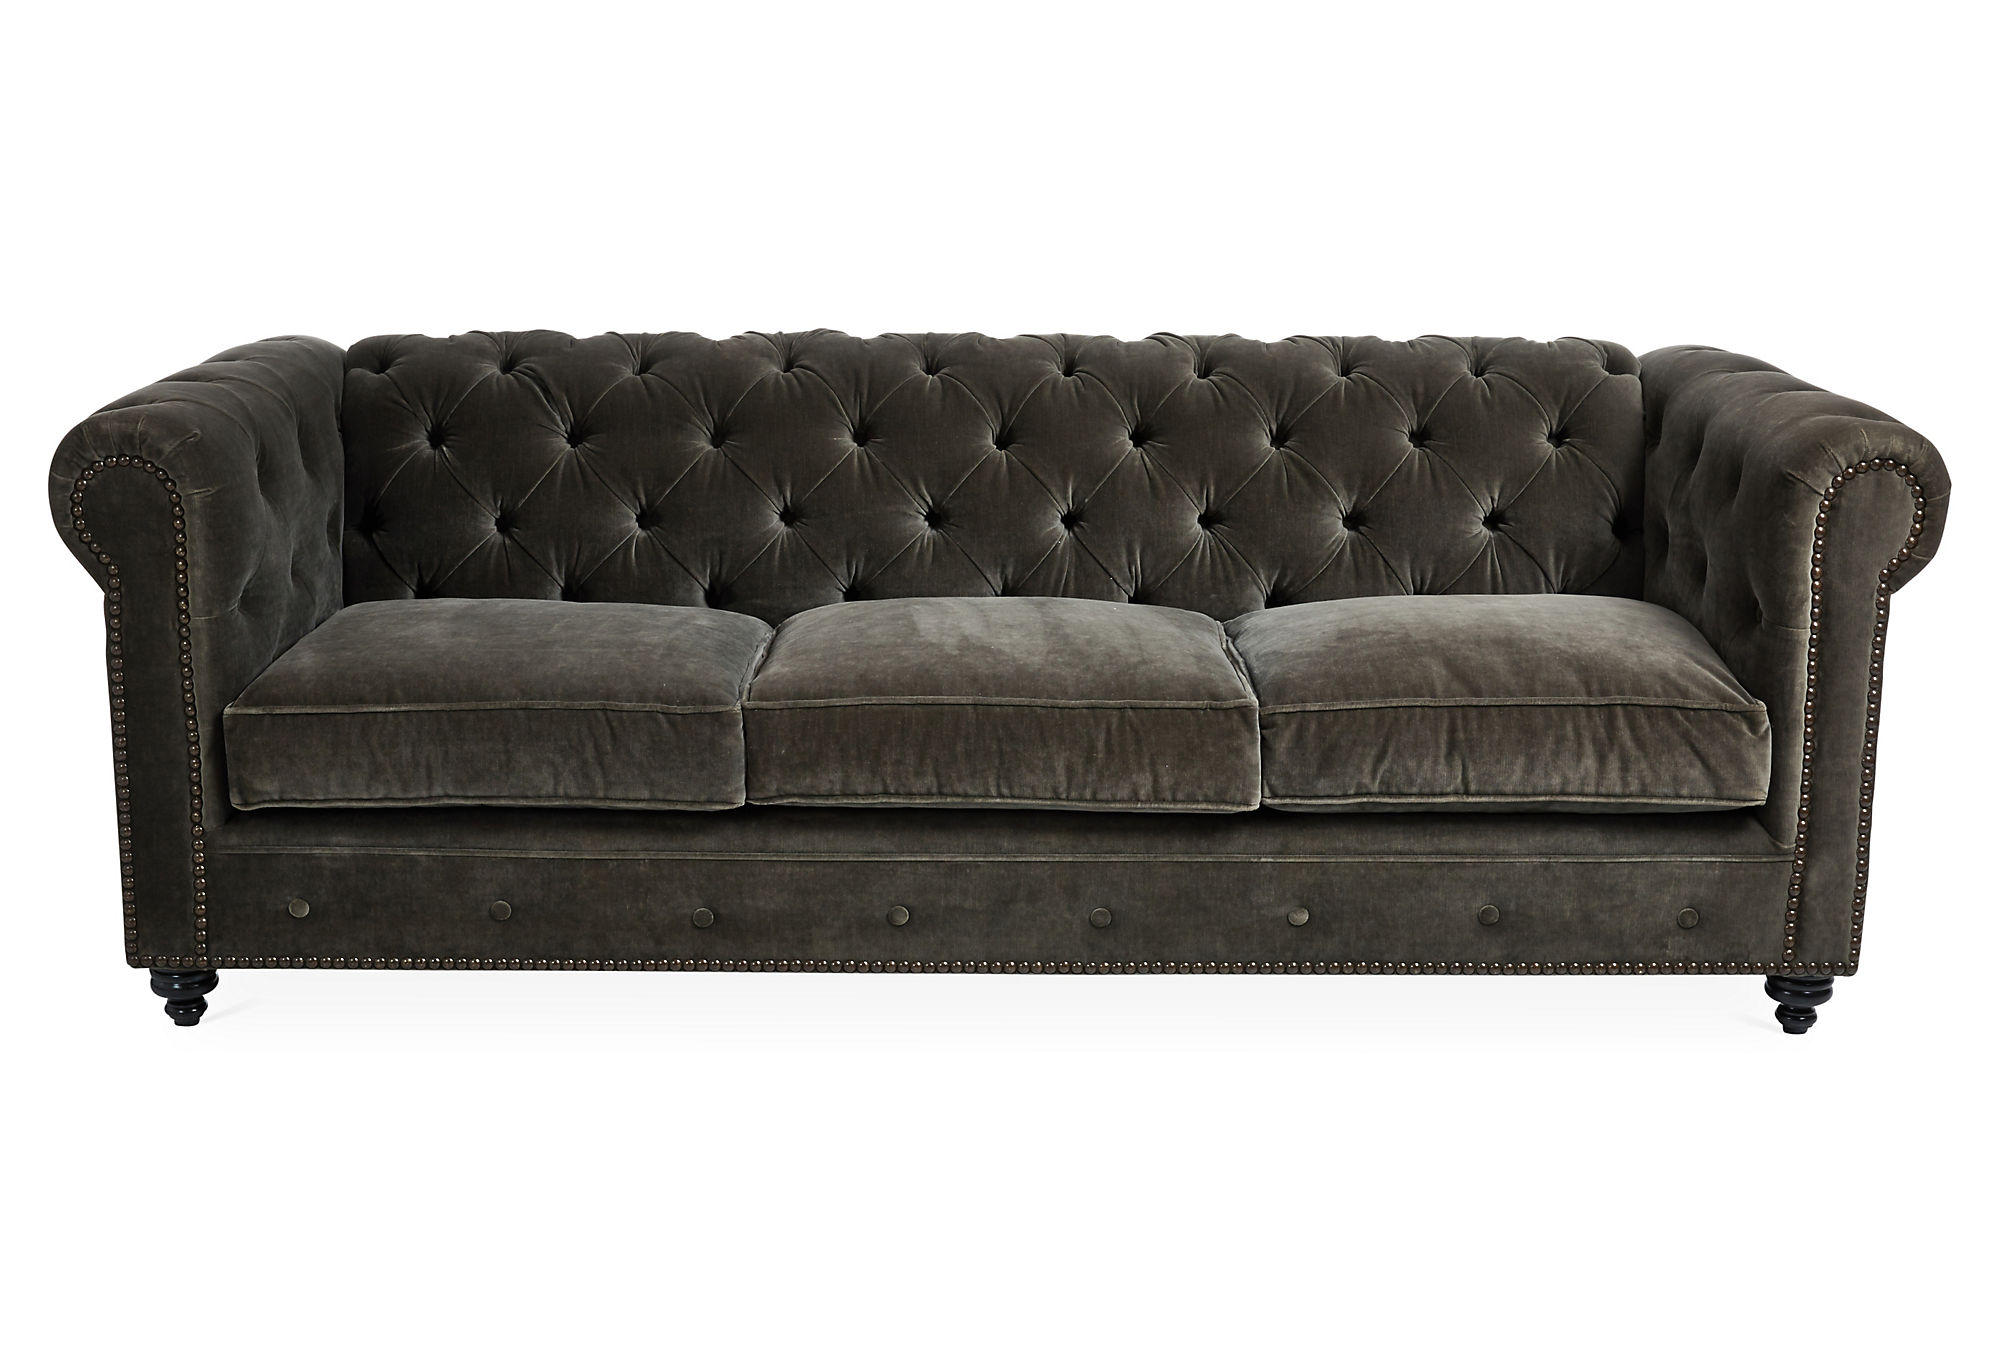 velvet grey tufted sofa milano leather next ralph 96 quot dark gray from one kings lane